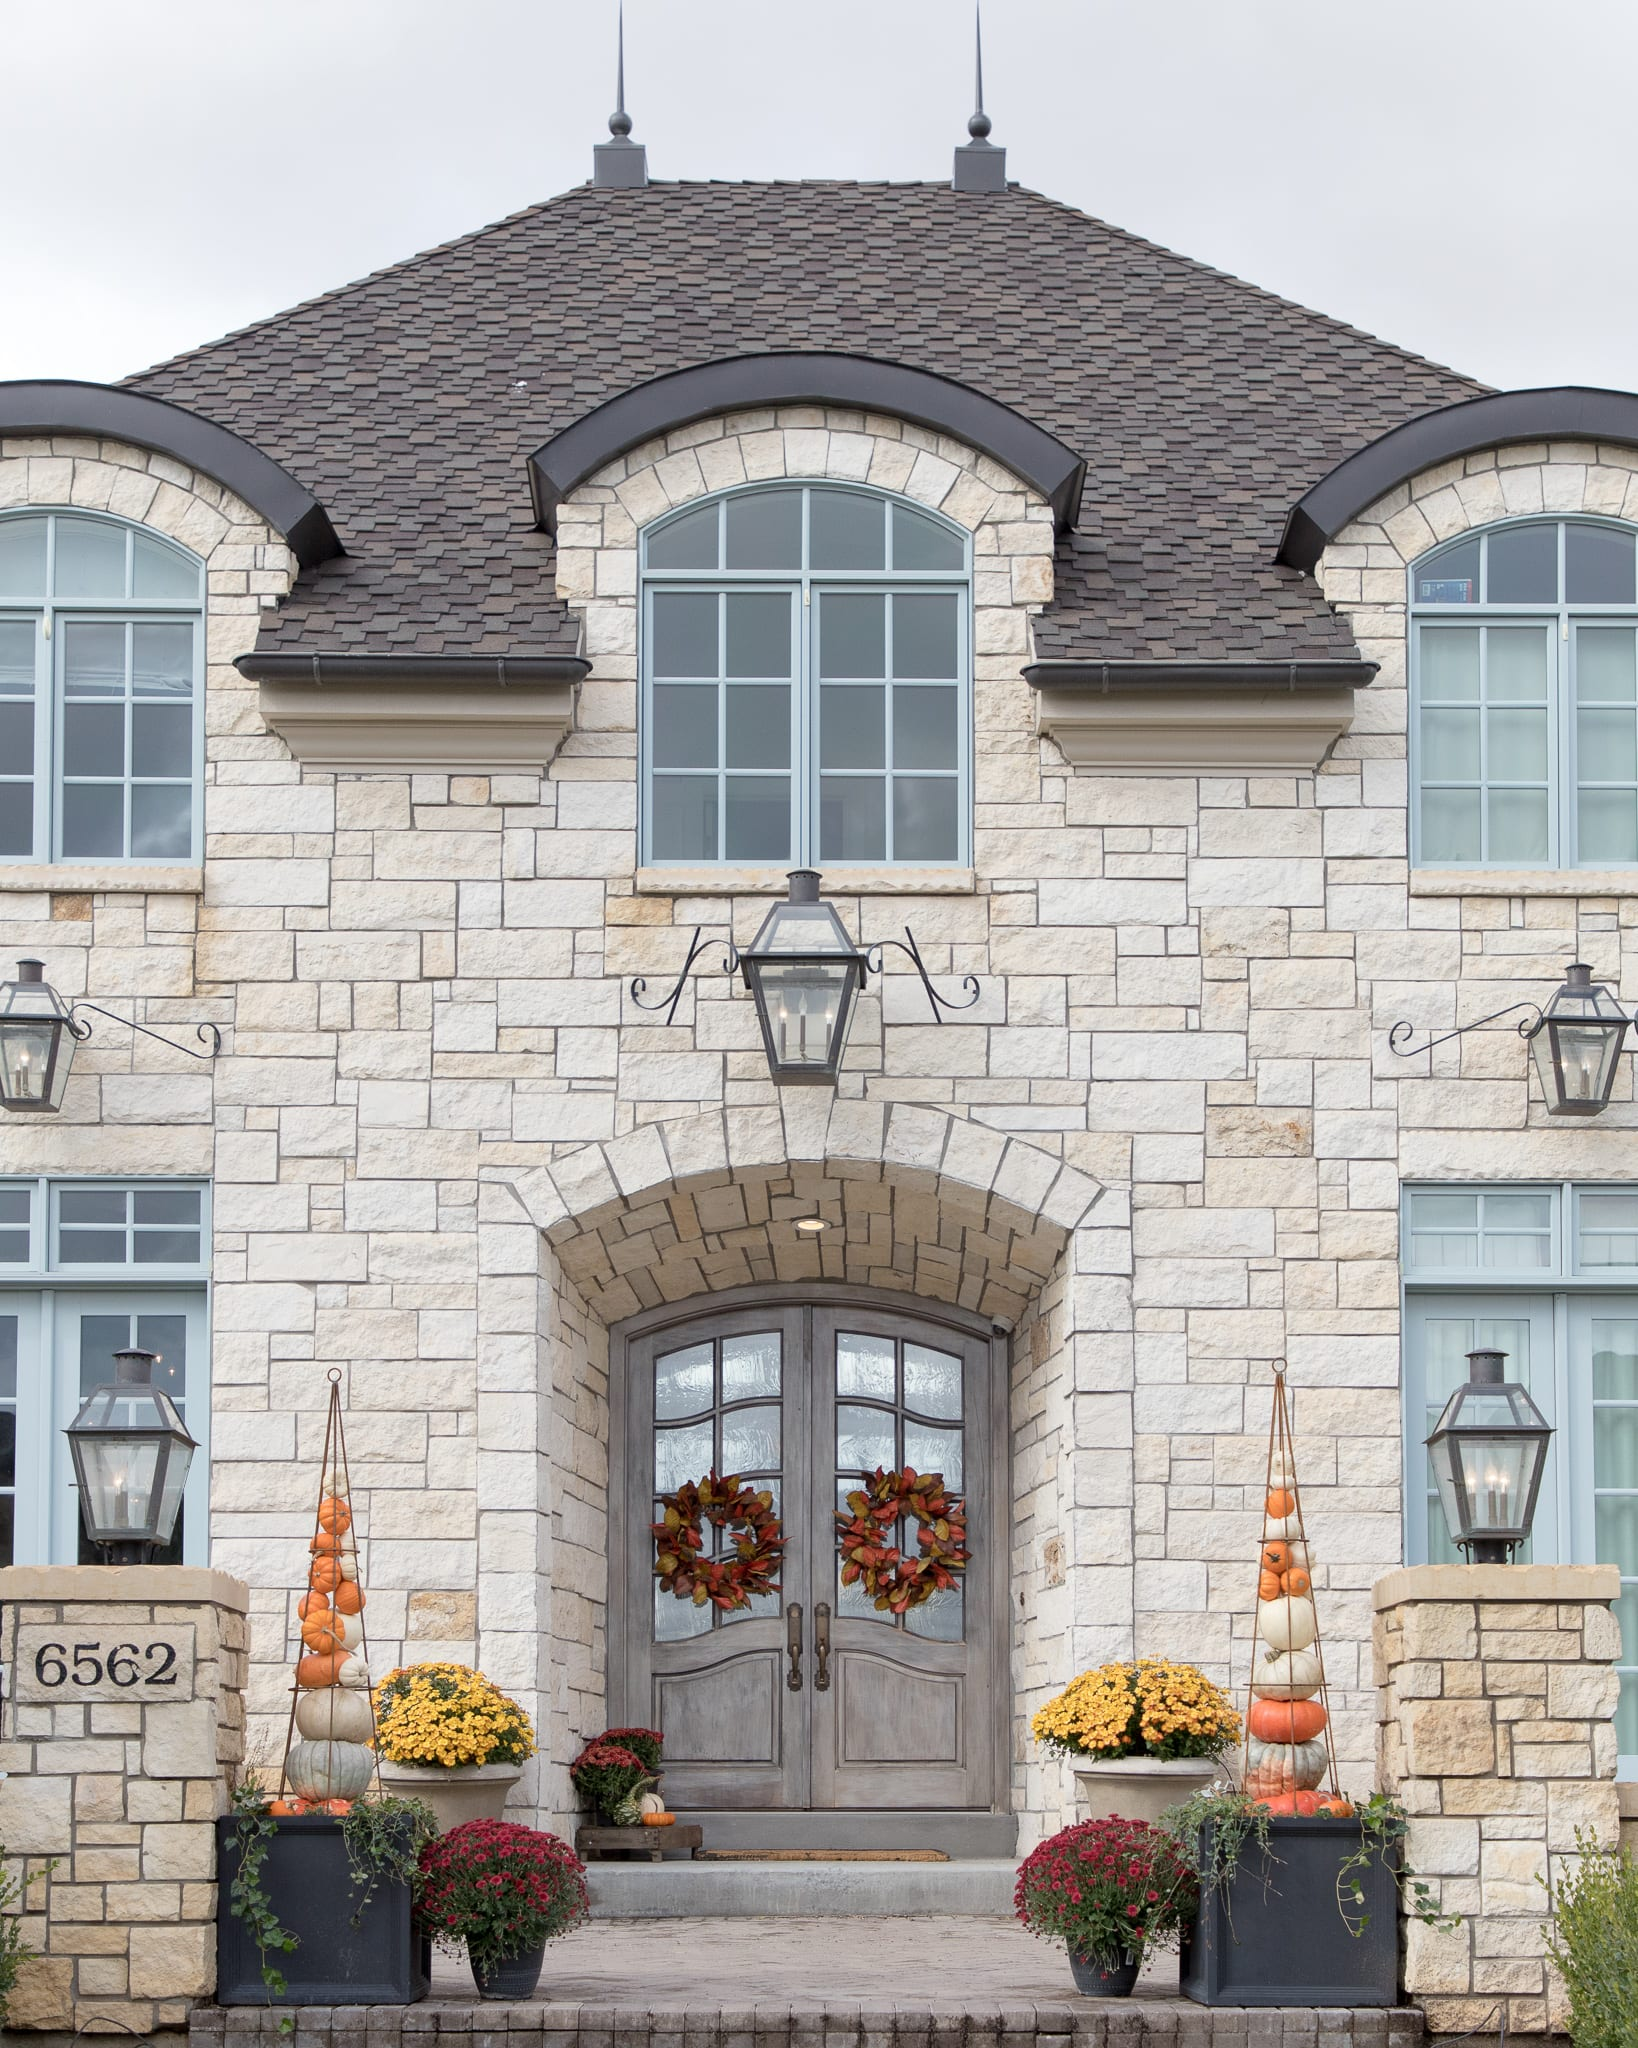 fall home tour home decor fall decor autumn design interior design exterior design home house